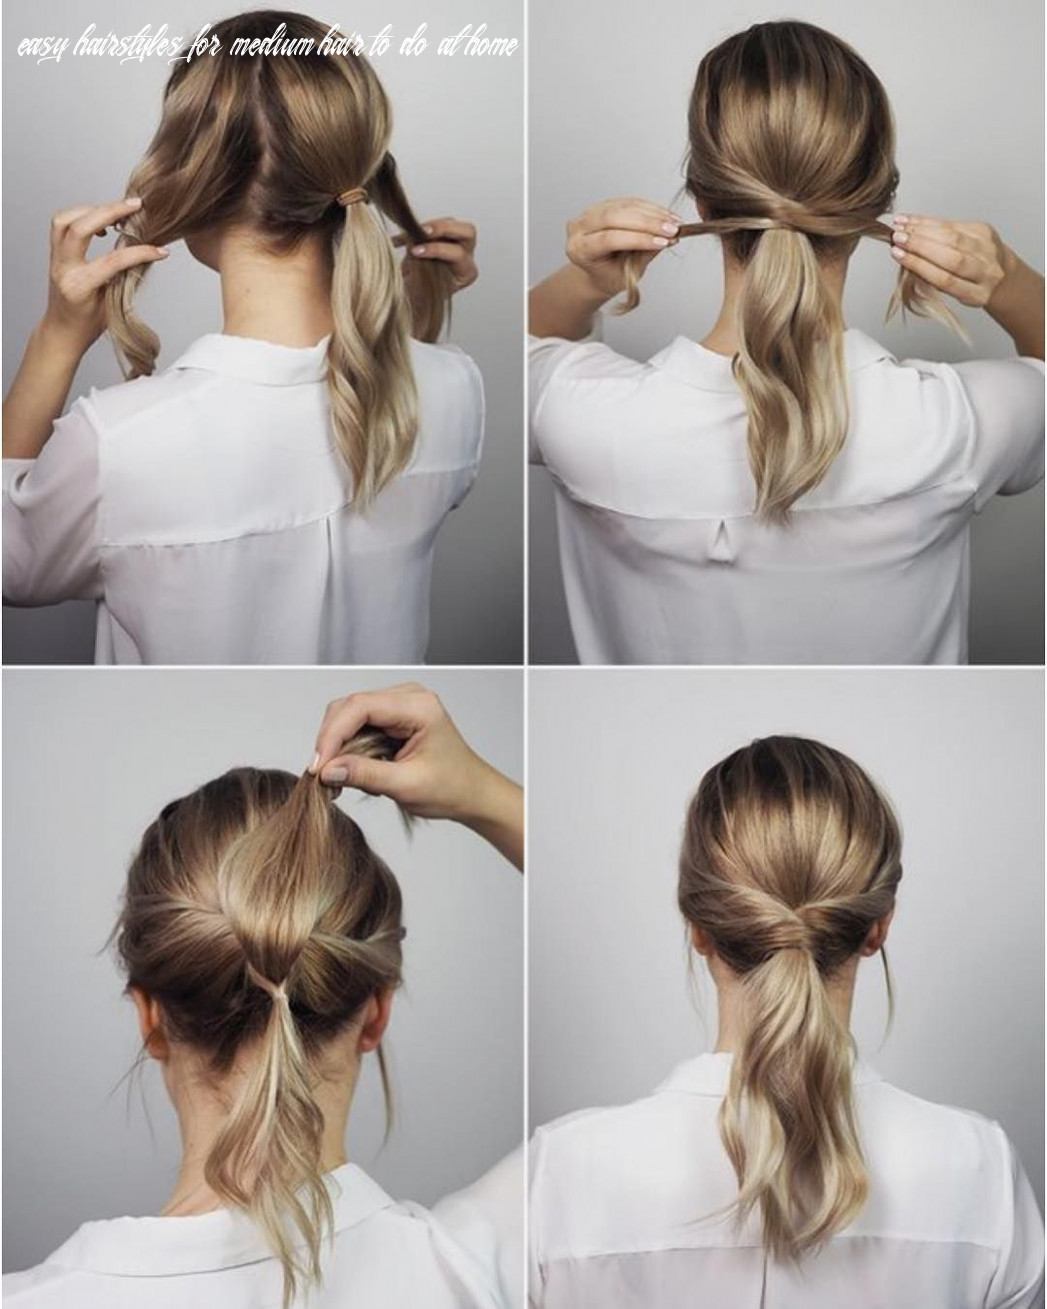 9 easy hairstyles for long hair to do at home step by step